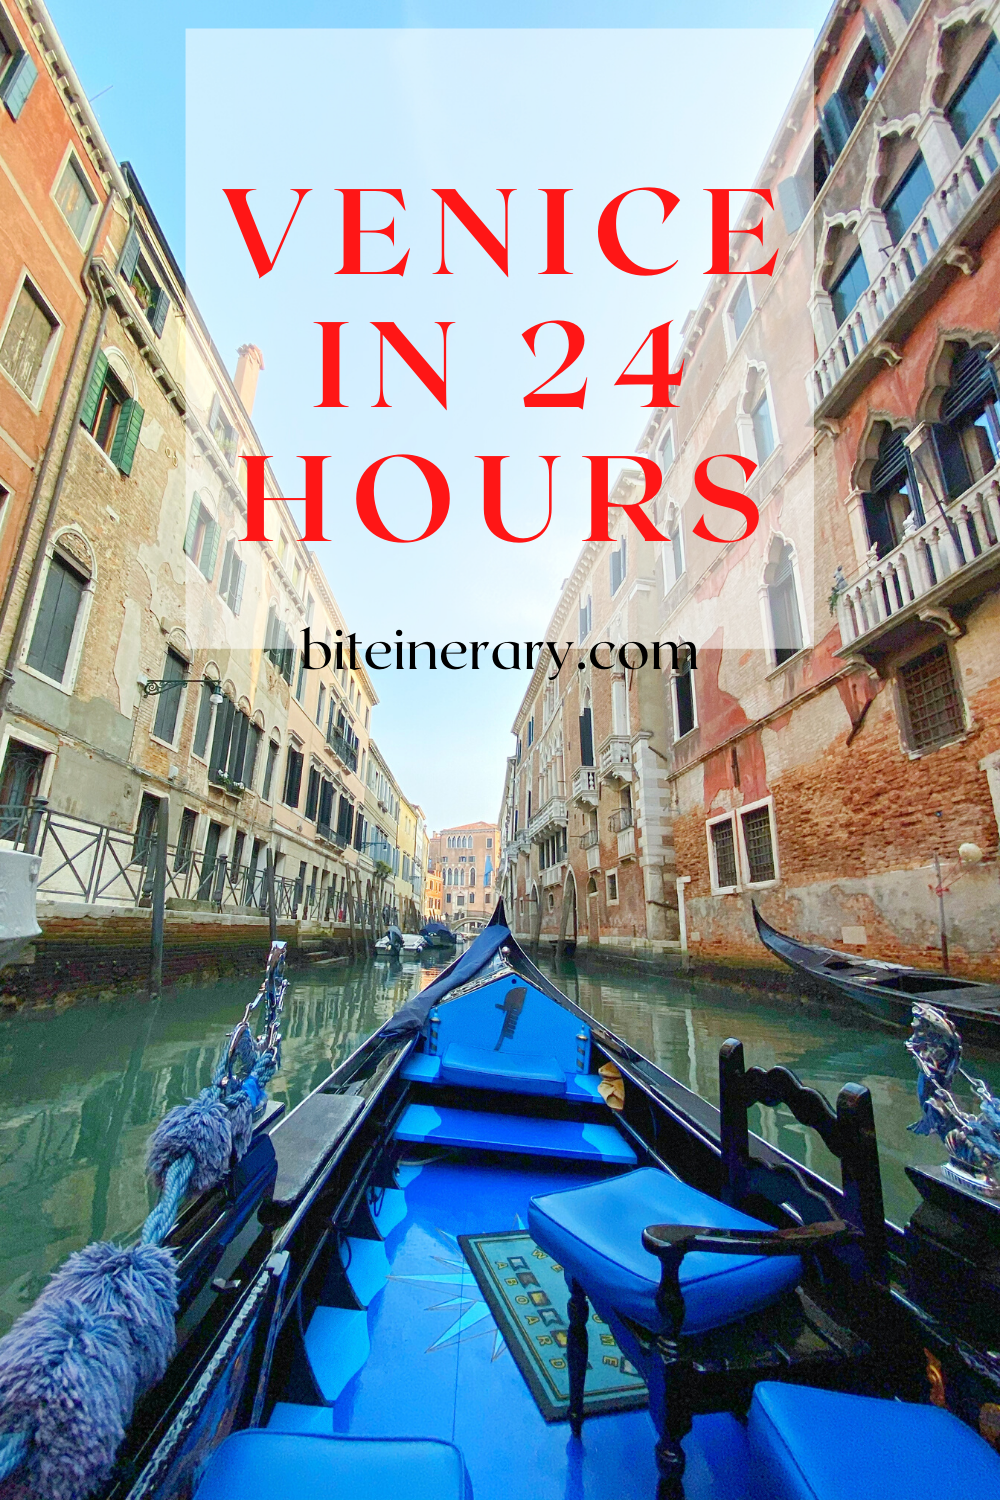 Explore Venice, Italy in 24 hours by Biteinerary